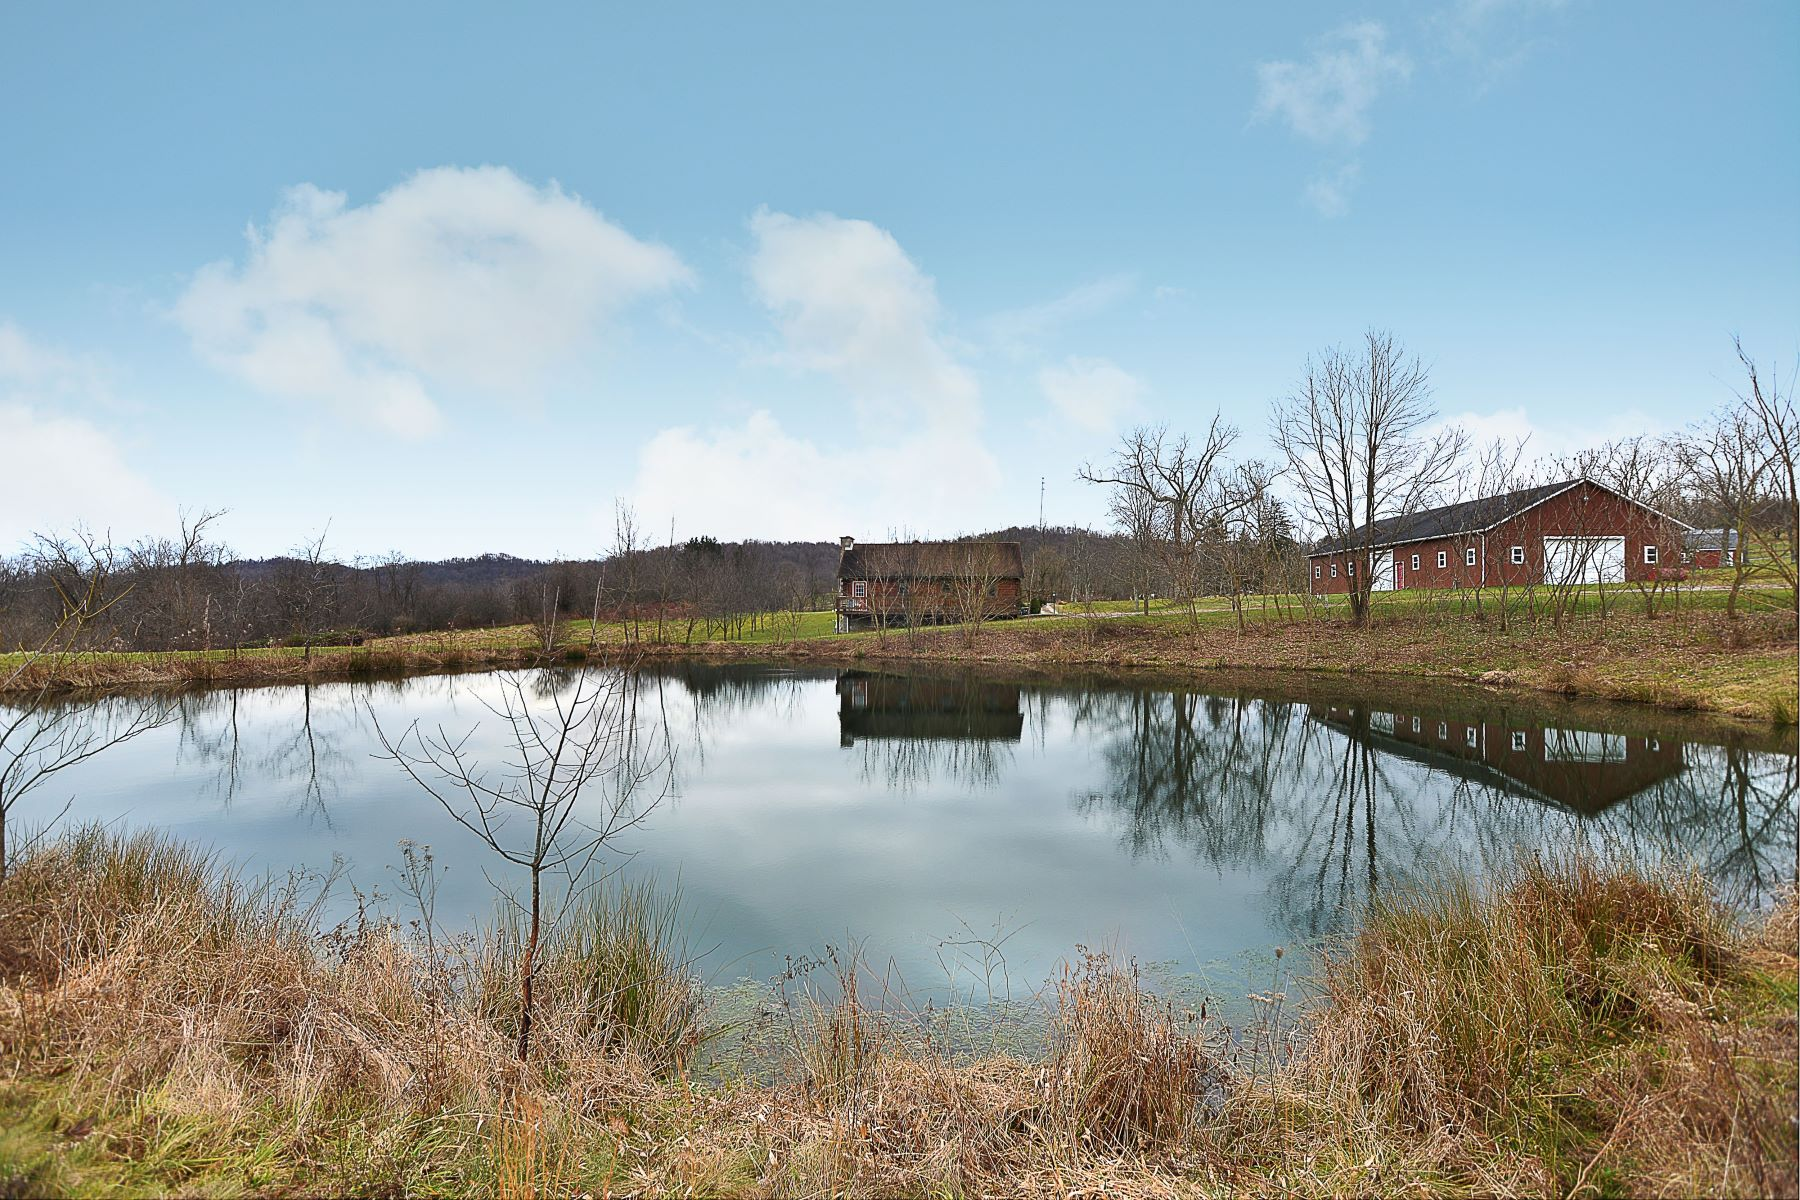 Single Family Homes for Sale at 337 Ten Mile Road Amity, Pennsylvania 15311 United States